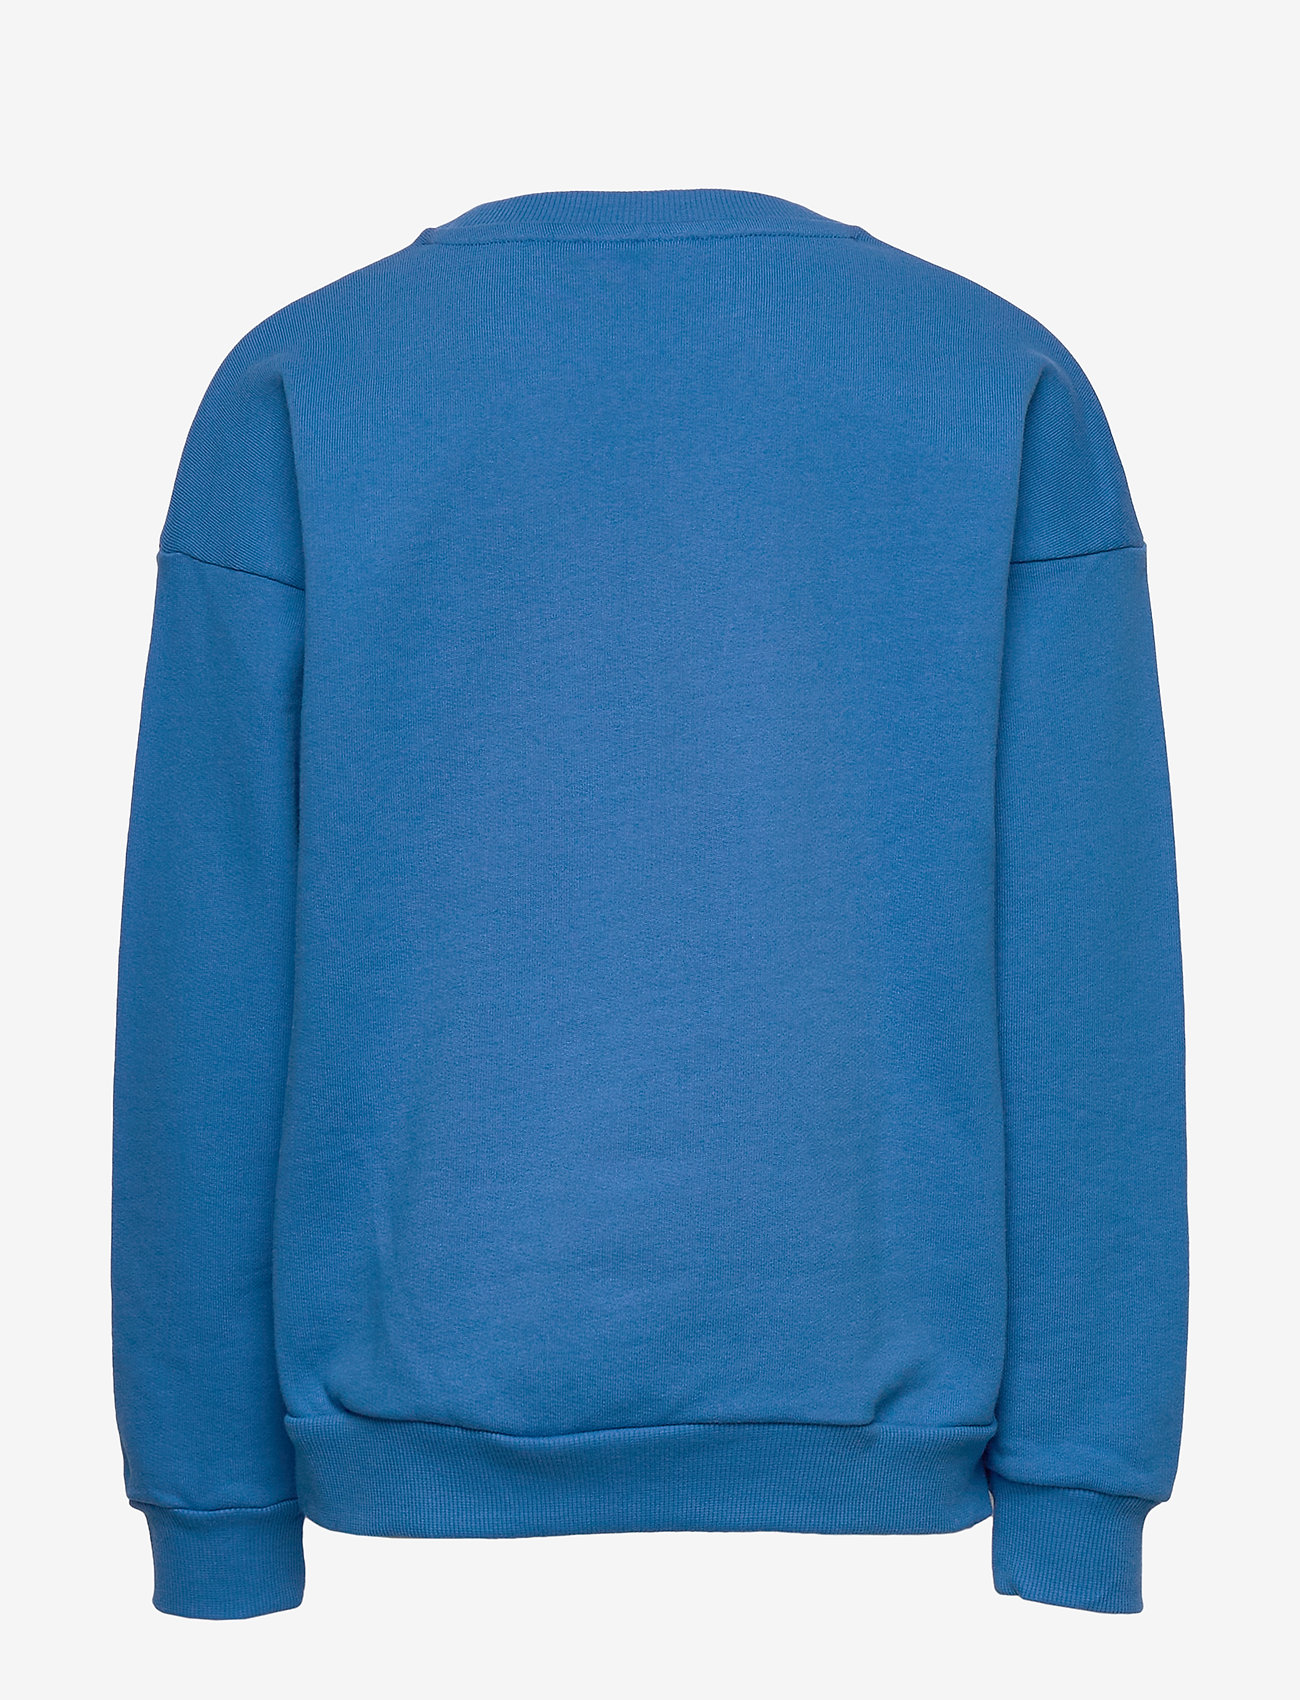 Mini Rodini - Game sp sweatshirt - sweatshirts - blue - 1